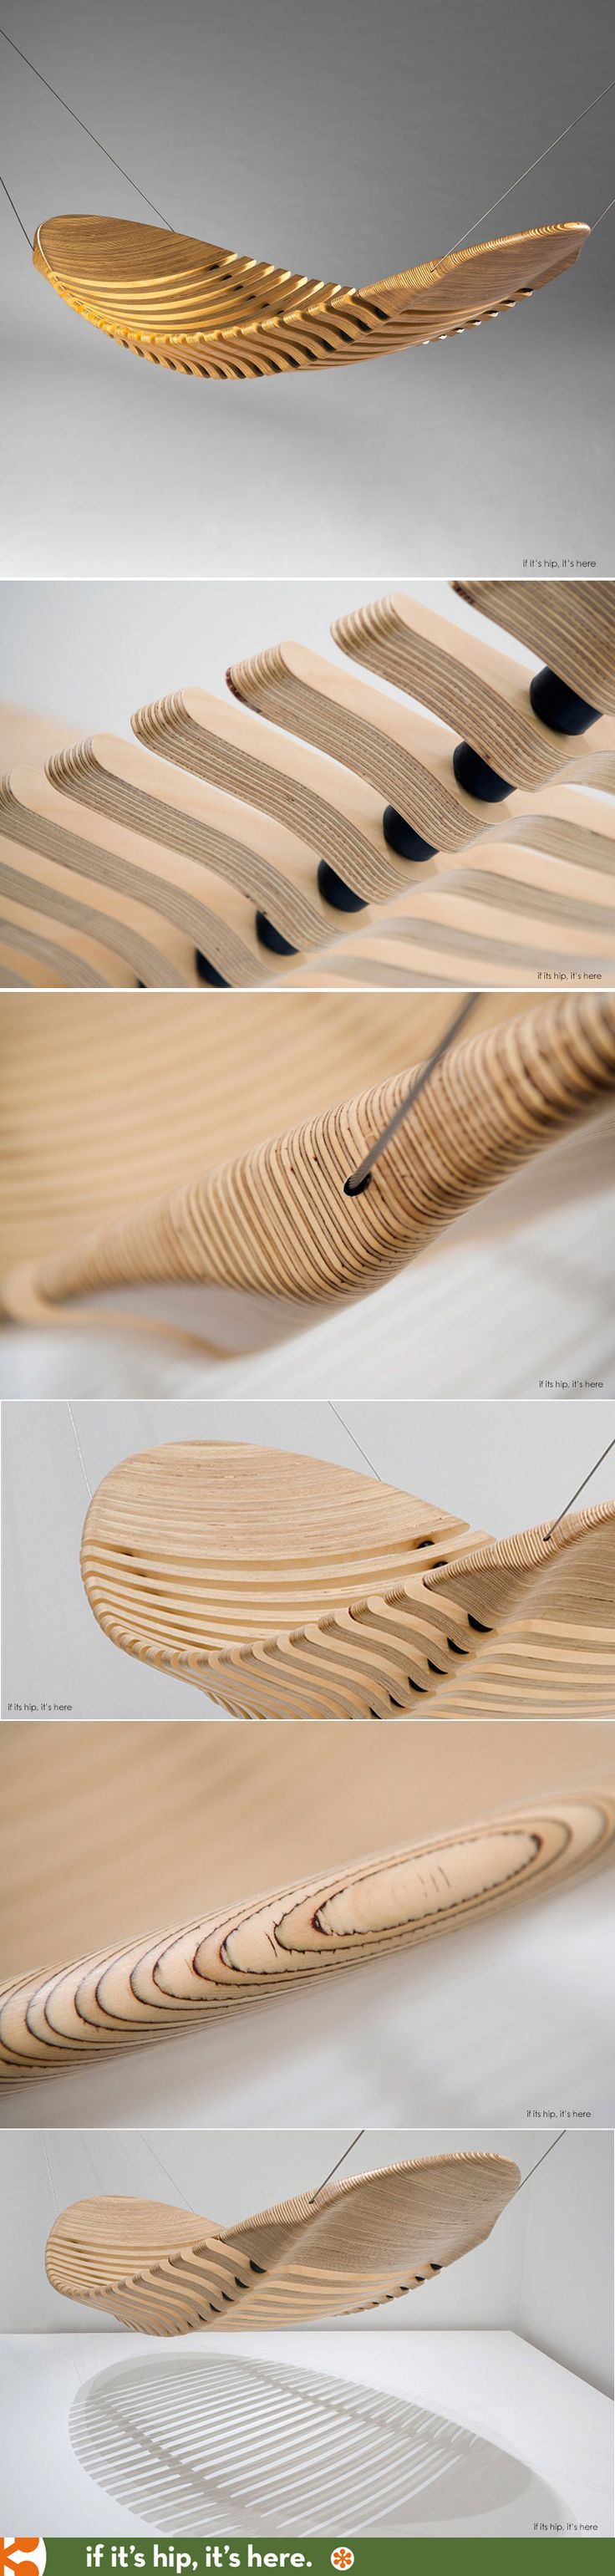 The Wooden Hammock by Adam Cornish was inspired by the human spine and is flexible as a result of the rubber vertebrae. Gorgeous.